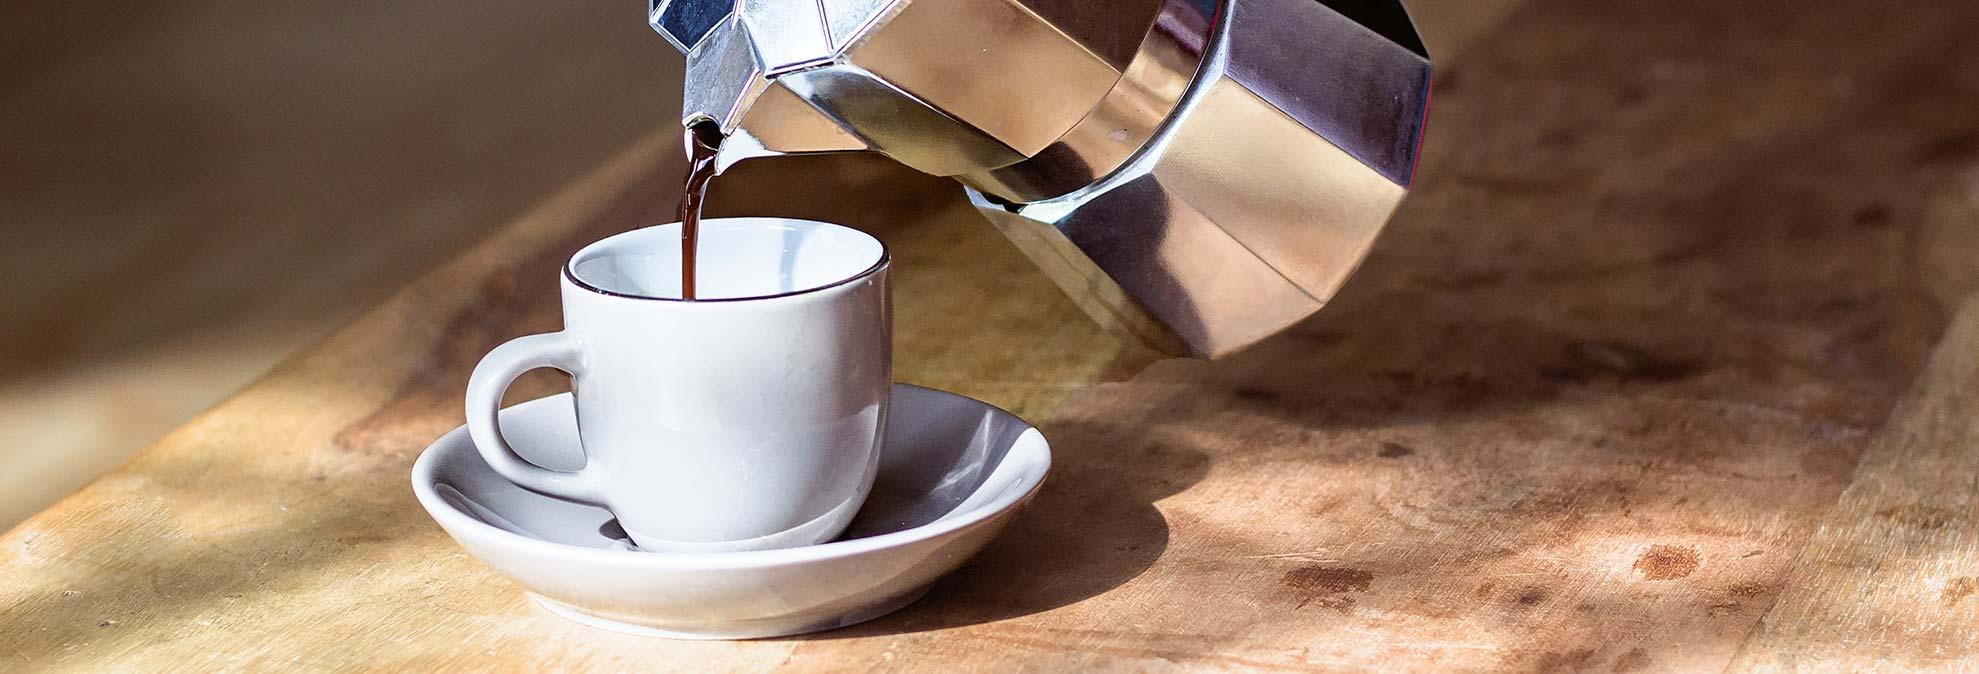 Is coffee good for you - Myths and truths about coffee ...